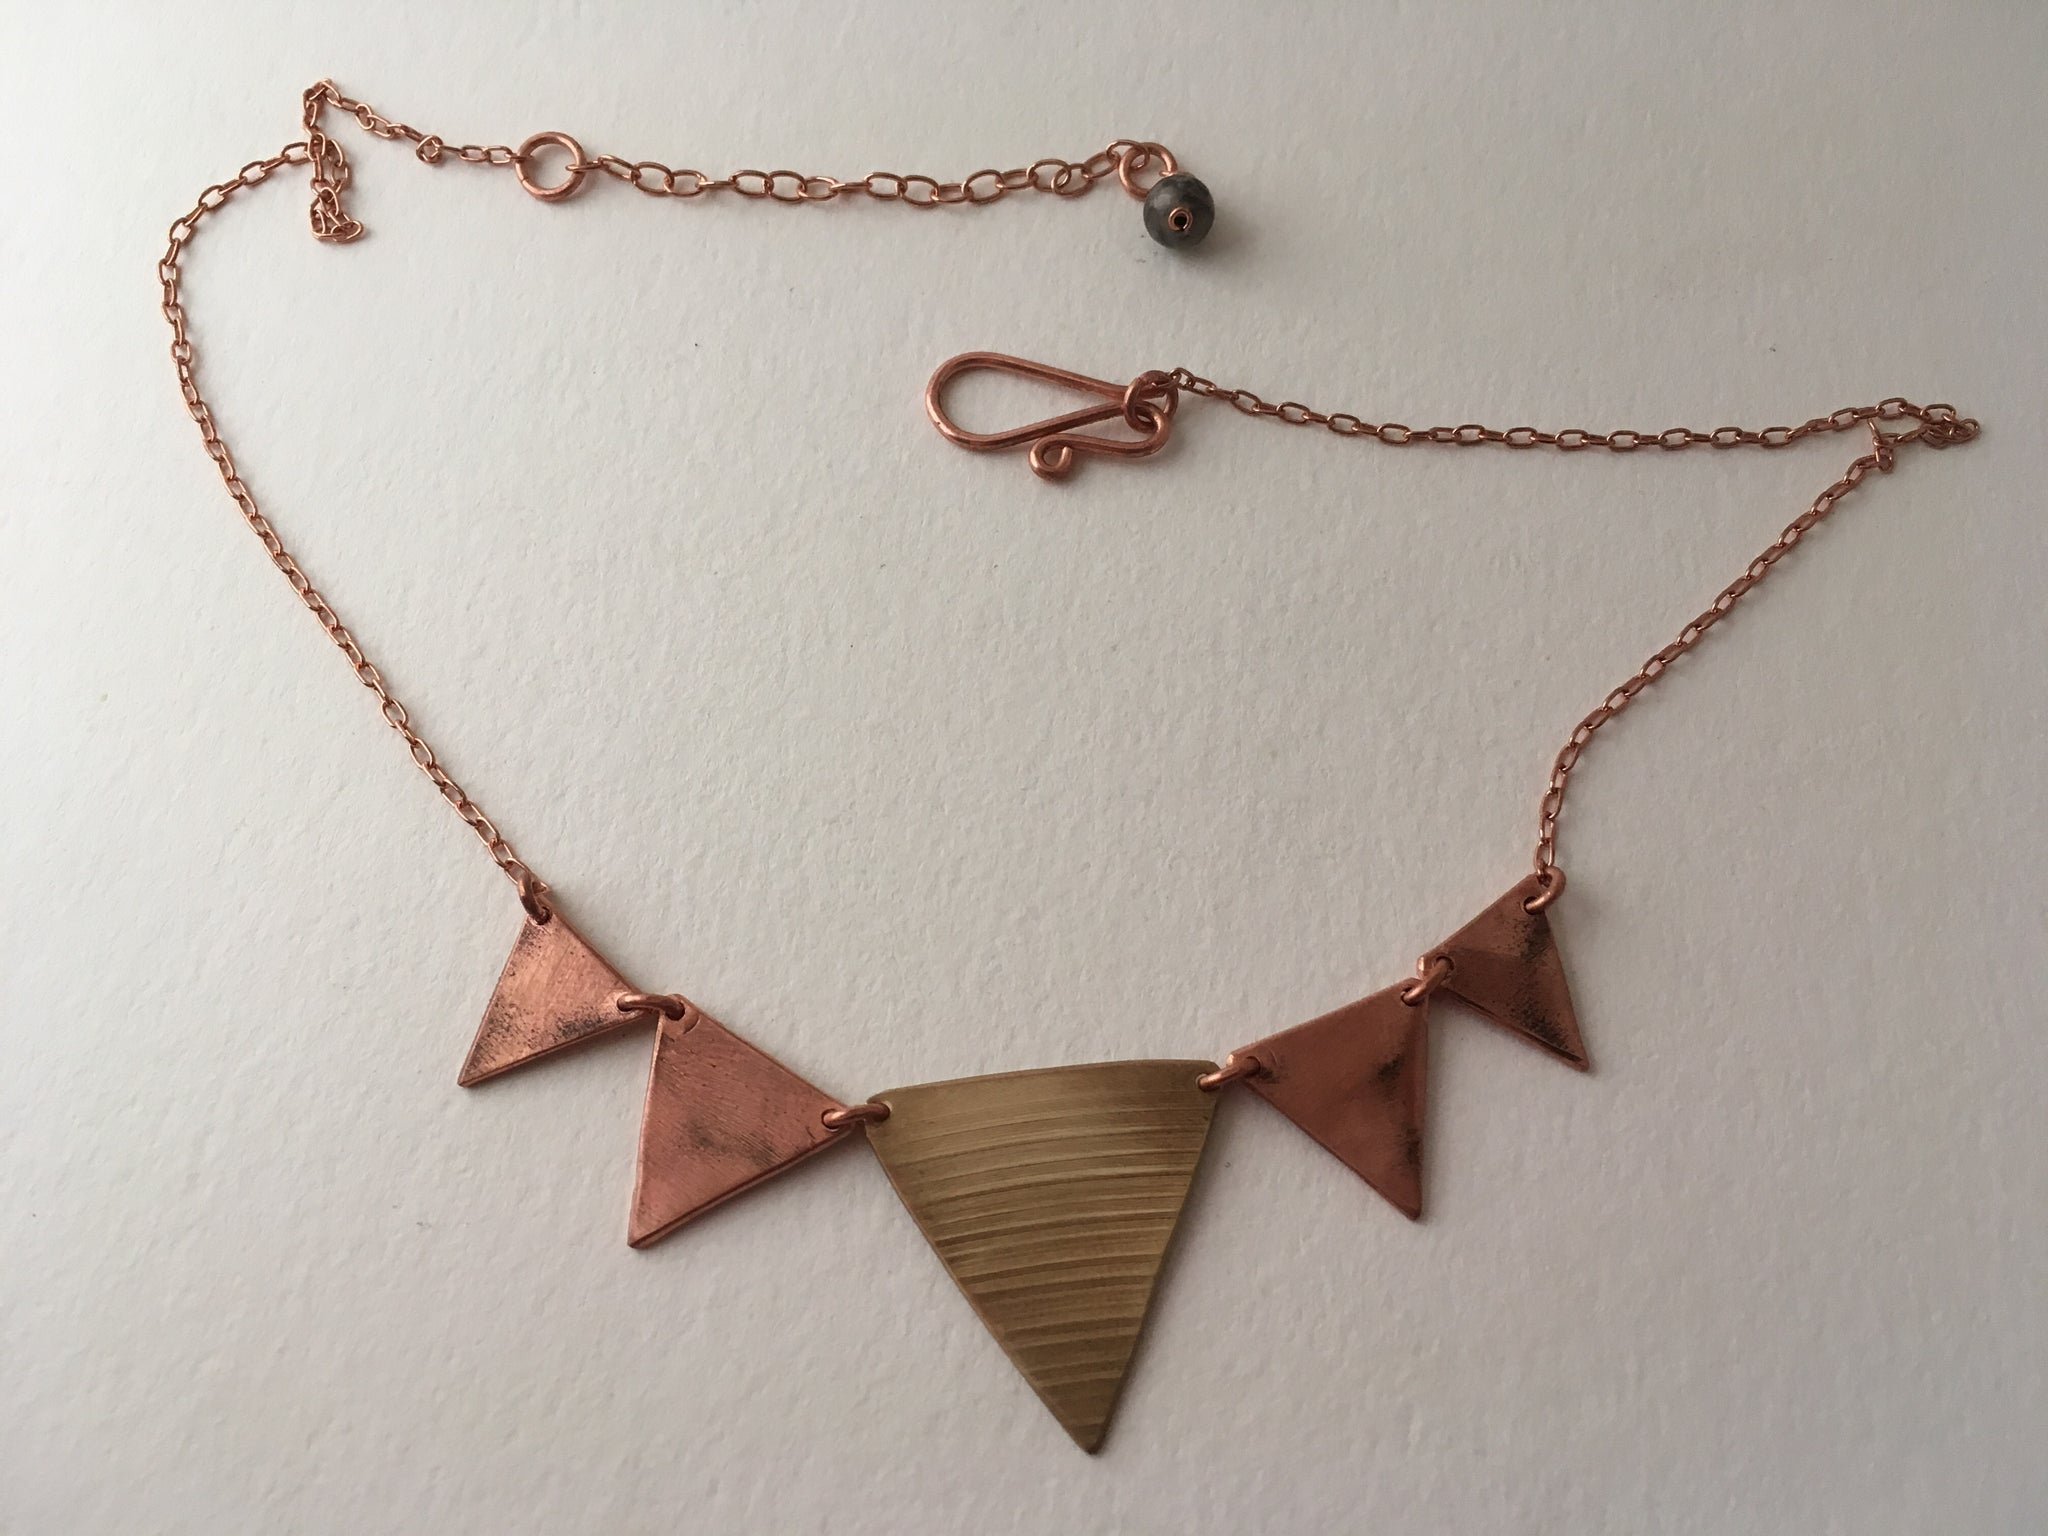 Celebration Five Triangle Bunting Necklace with Large Brass Triangle